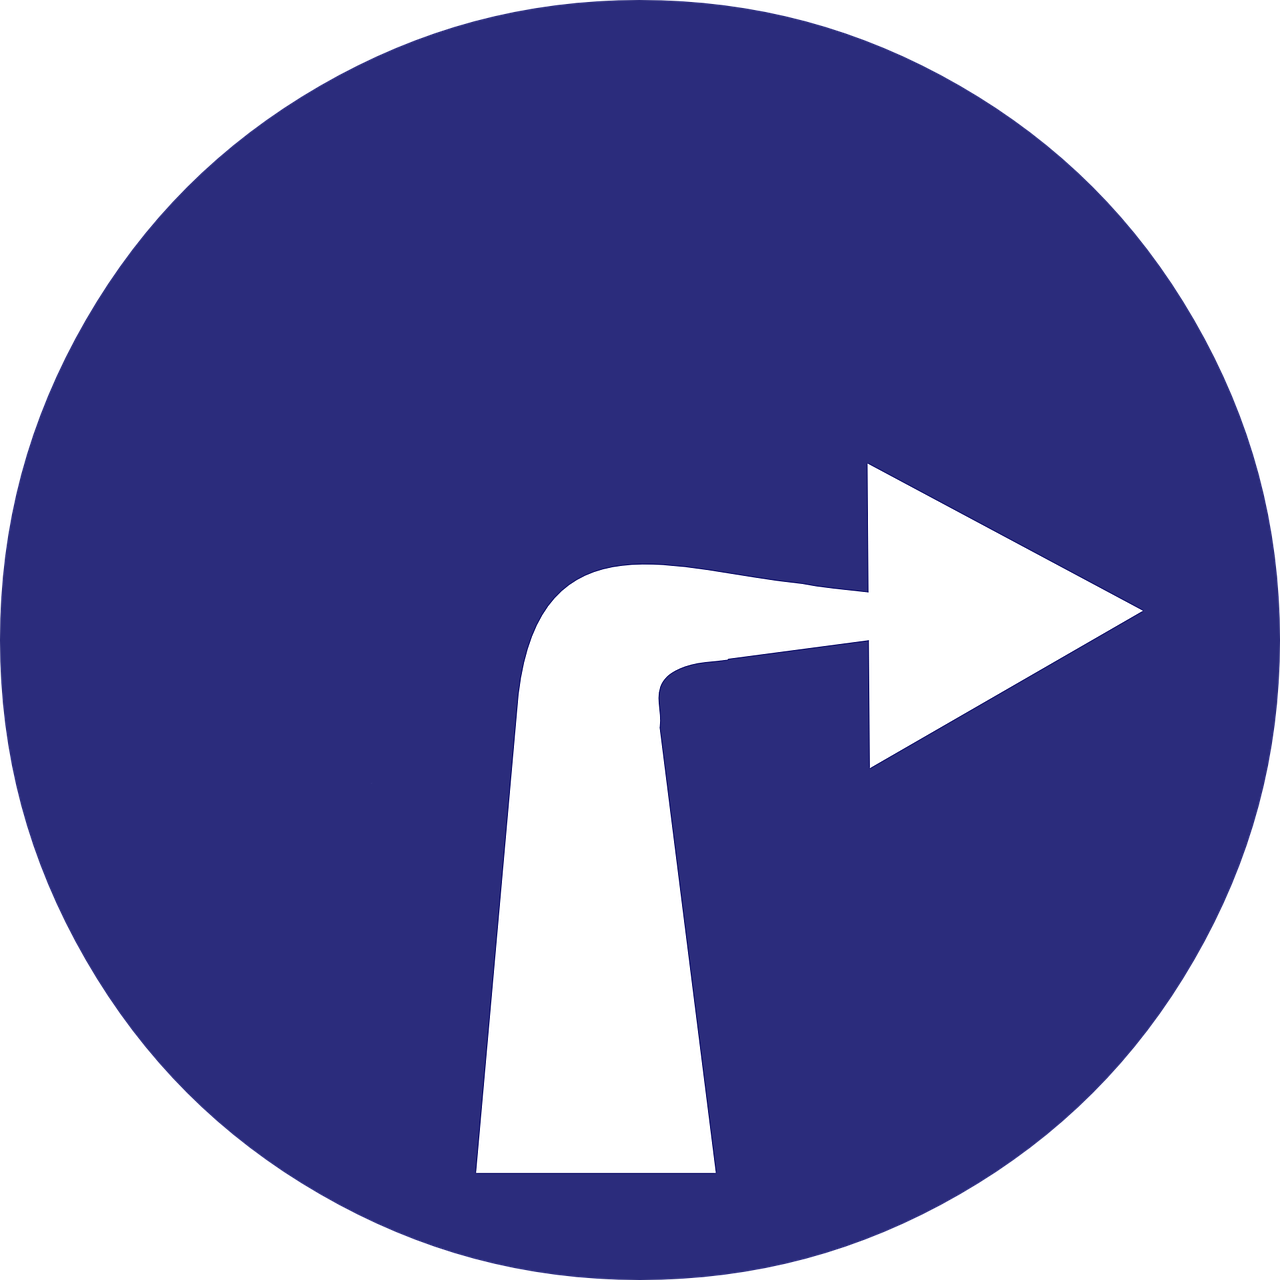 turn-right-910117_1280.png